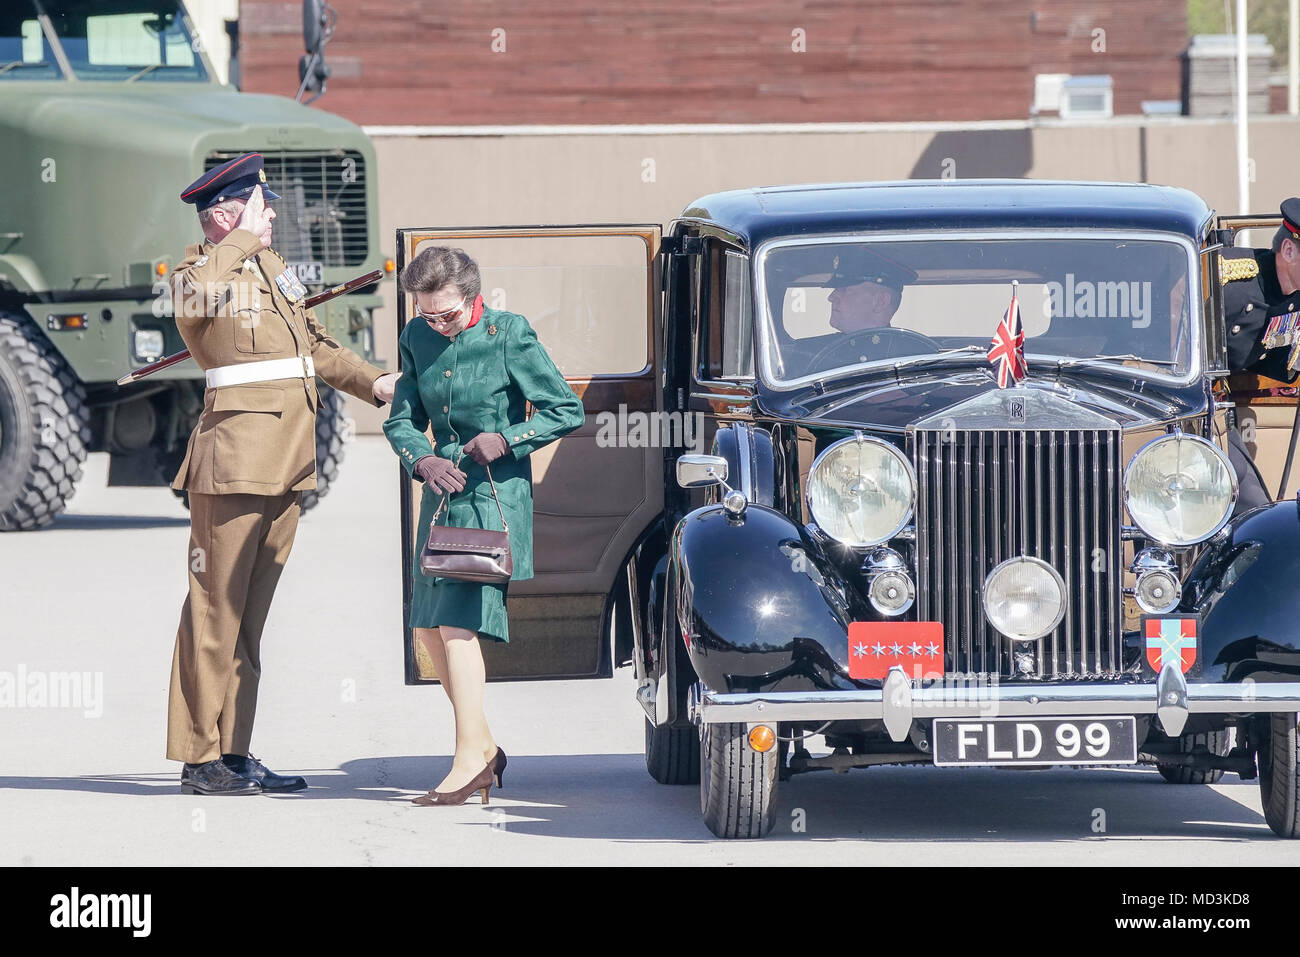 Greenwood Road, Pirbright. 18th April 2018. The 25th anniversary of the British Army's largest Corps, the Royal Logistic Corps held its anniversary parade this afternoon. Her Royal Highness the Princess Royal was the guest of honour for this historic occasion. Credit: james jagger/Alamy Live News - Stock Image